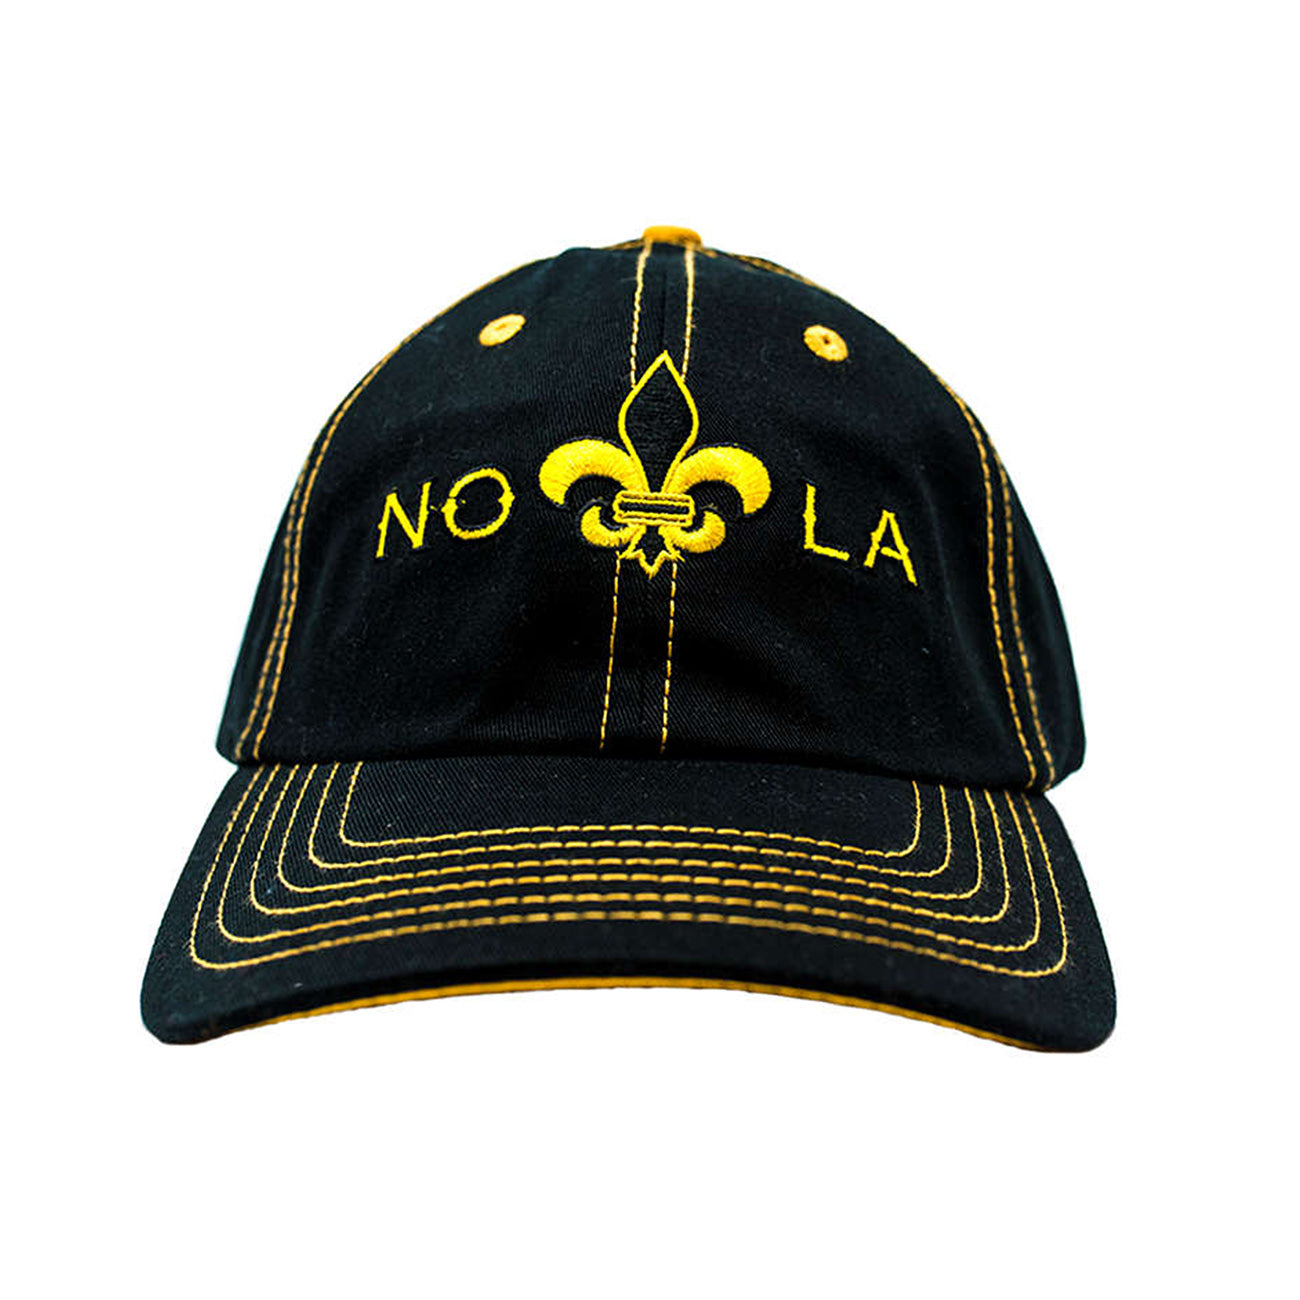 NOLA - Black/Gold Dads Cap